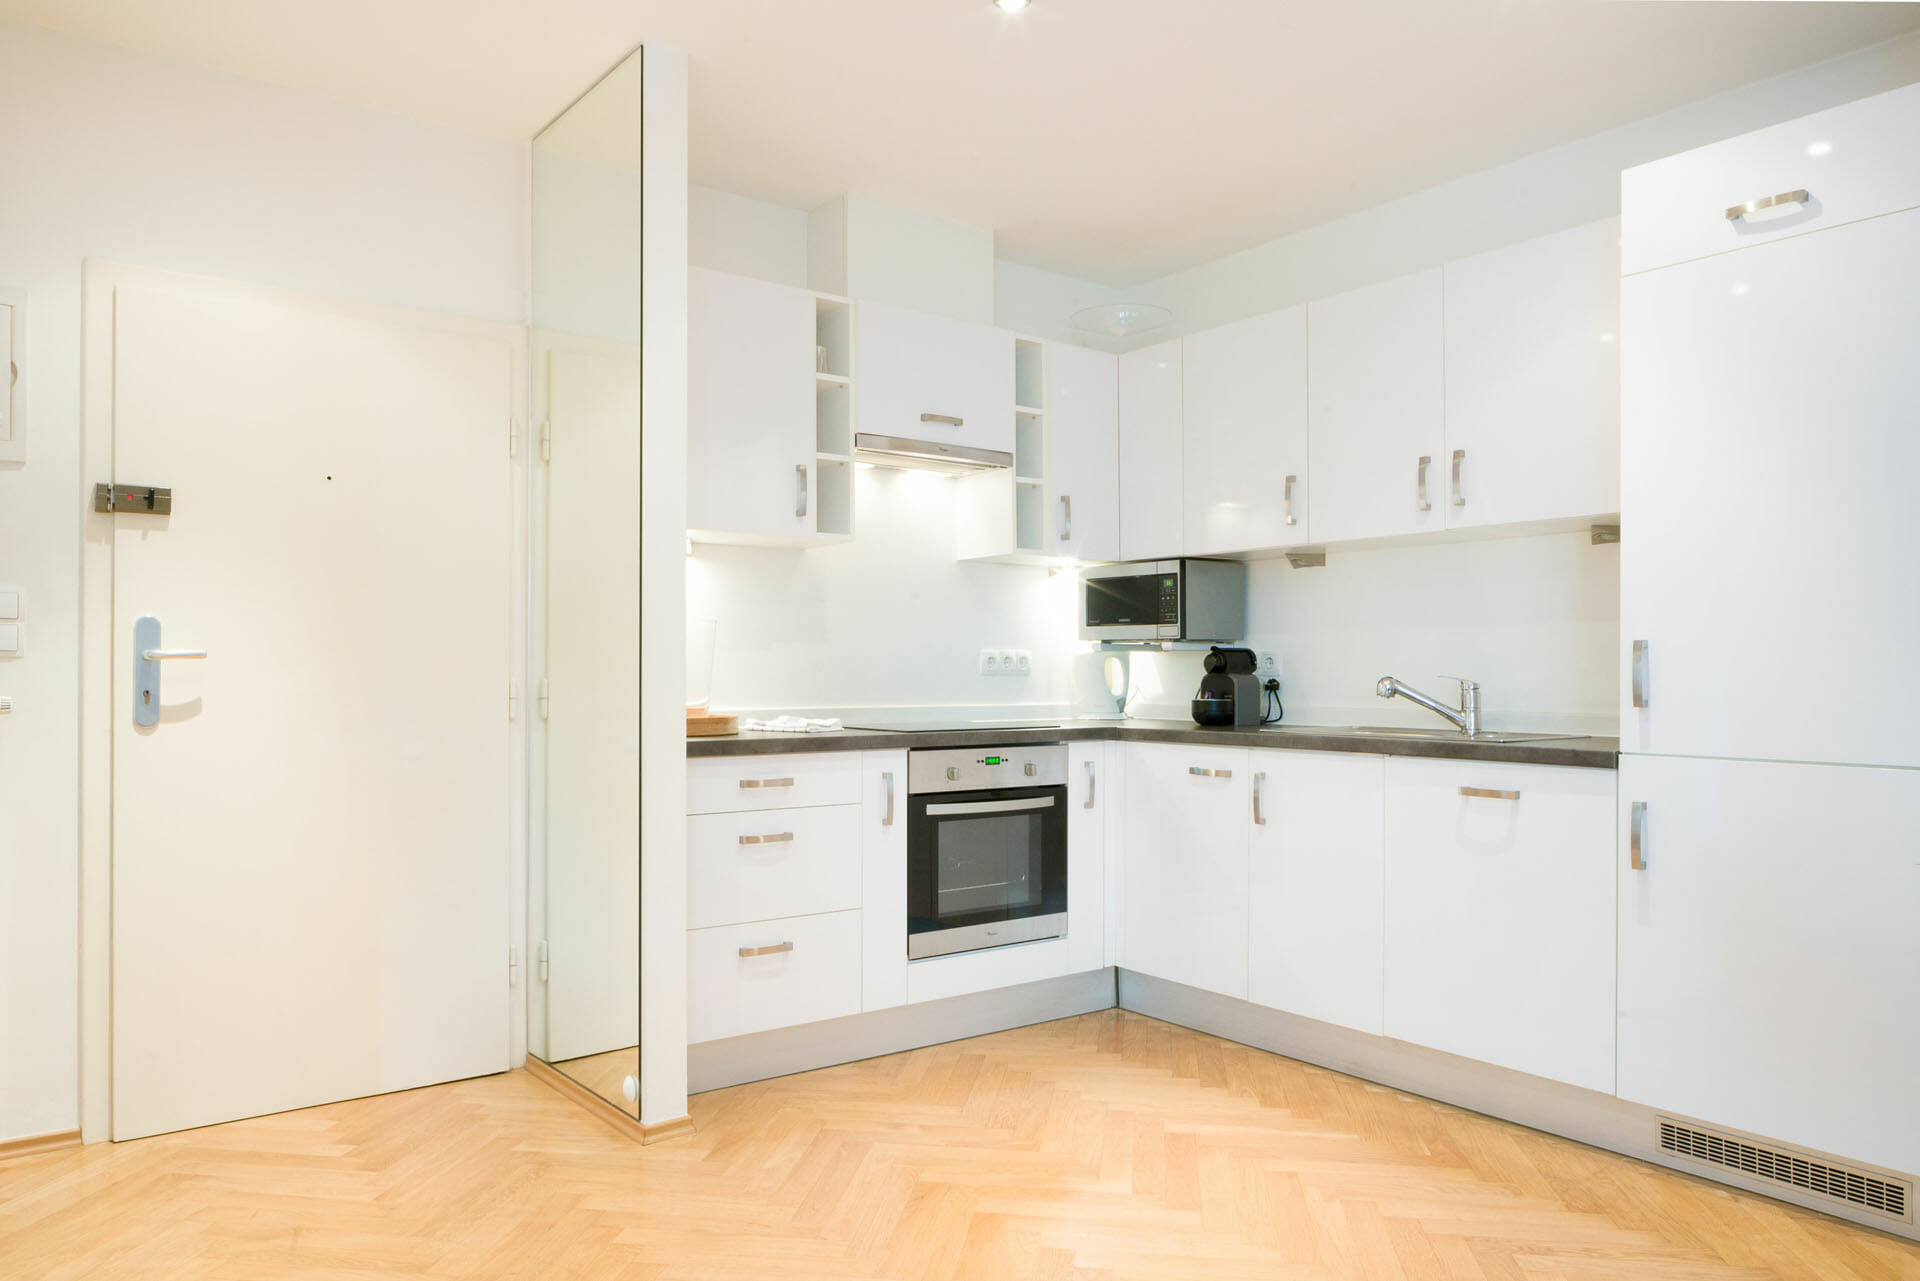 Prestige Apartments in Vienna Spacious Apartment close to Palais Liechtenstein. Bindergasse 5 - 9. Equipment: electric stove, oven, refrigerator, freezer, coffee machine, water heater, toaster.  Internet, Digital Cable TV, Fully equipped kitchen, Fully furnished interior, Non smoking.